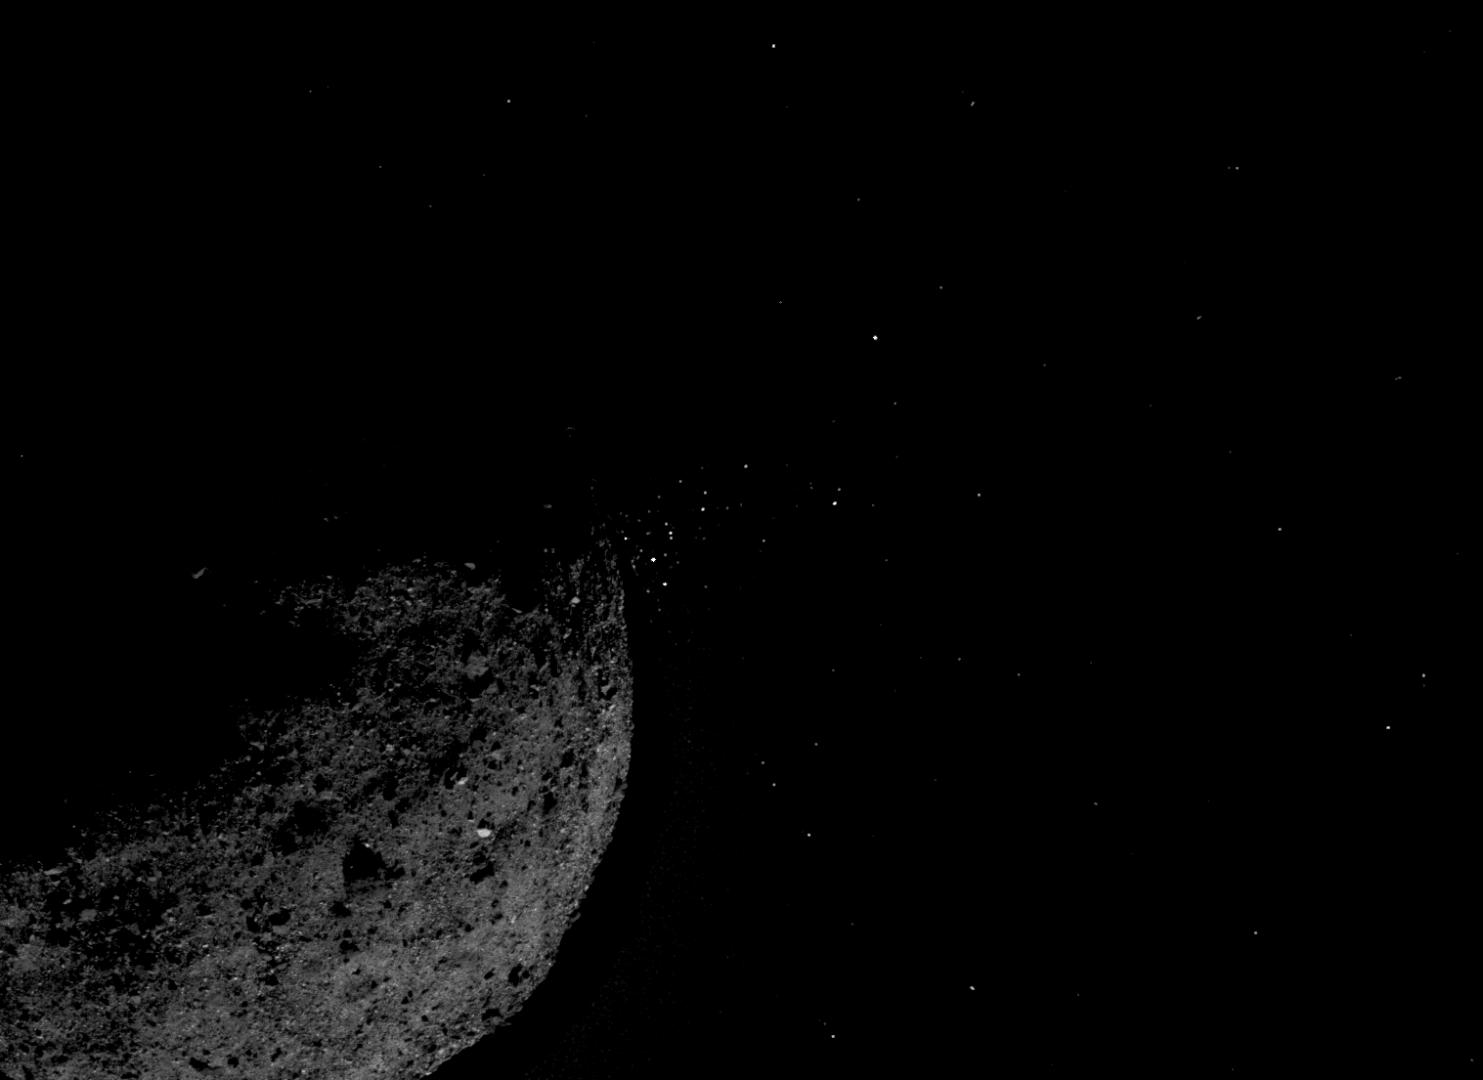 This view of asteroid Bennu ejecting particles from its surface on January 19, 2019, was created by combining two images taken by the NavCam 1 imager onboard NASA's OSIRIS-REx spacecraft: a short exposure image that shows the asteroid clearly and a long exposure image that shows the particles clearly. Other image processing techniques were also applied, such as cropping and adjusting the brightness and contrast of each layer.NASA/Goddard/University of Arizona/Lockheed Martin